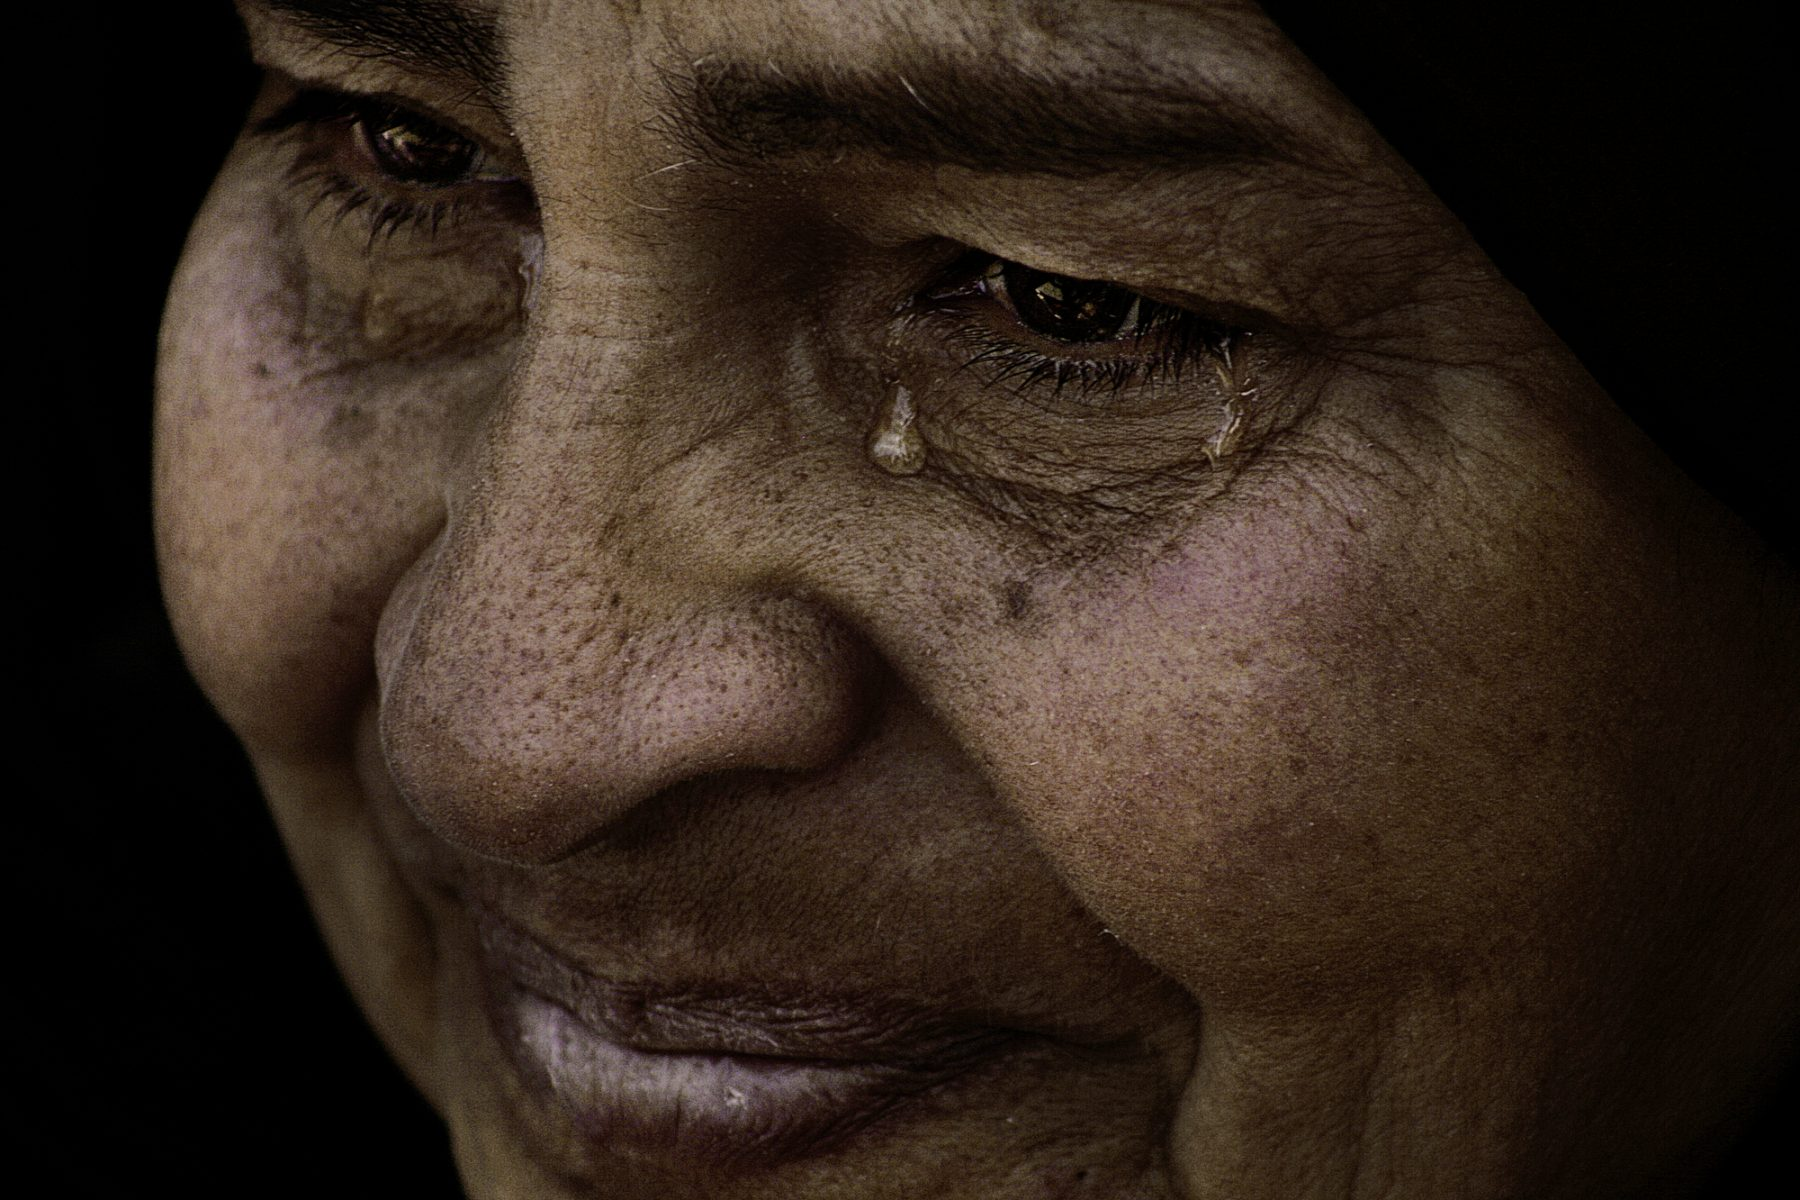 Color photo by Laura El-Tantawy from IN THE SHADOW OF THE PYRAMIDS. Cairo, Egypt, Revolution, woman crying